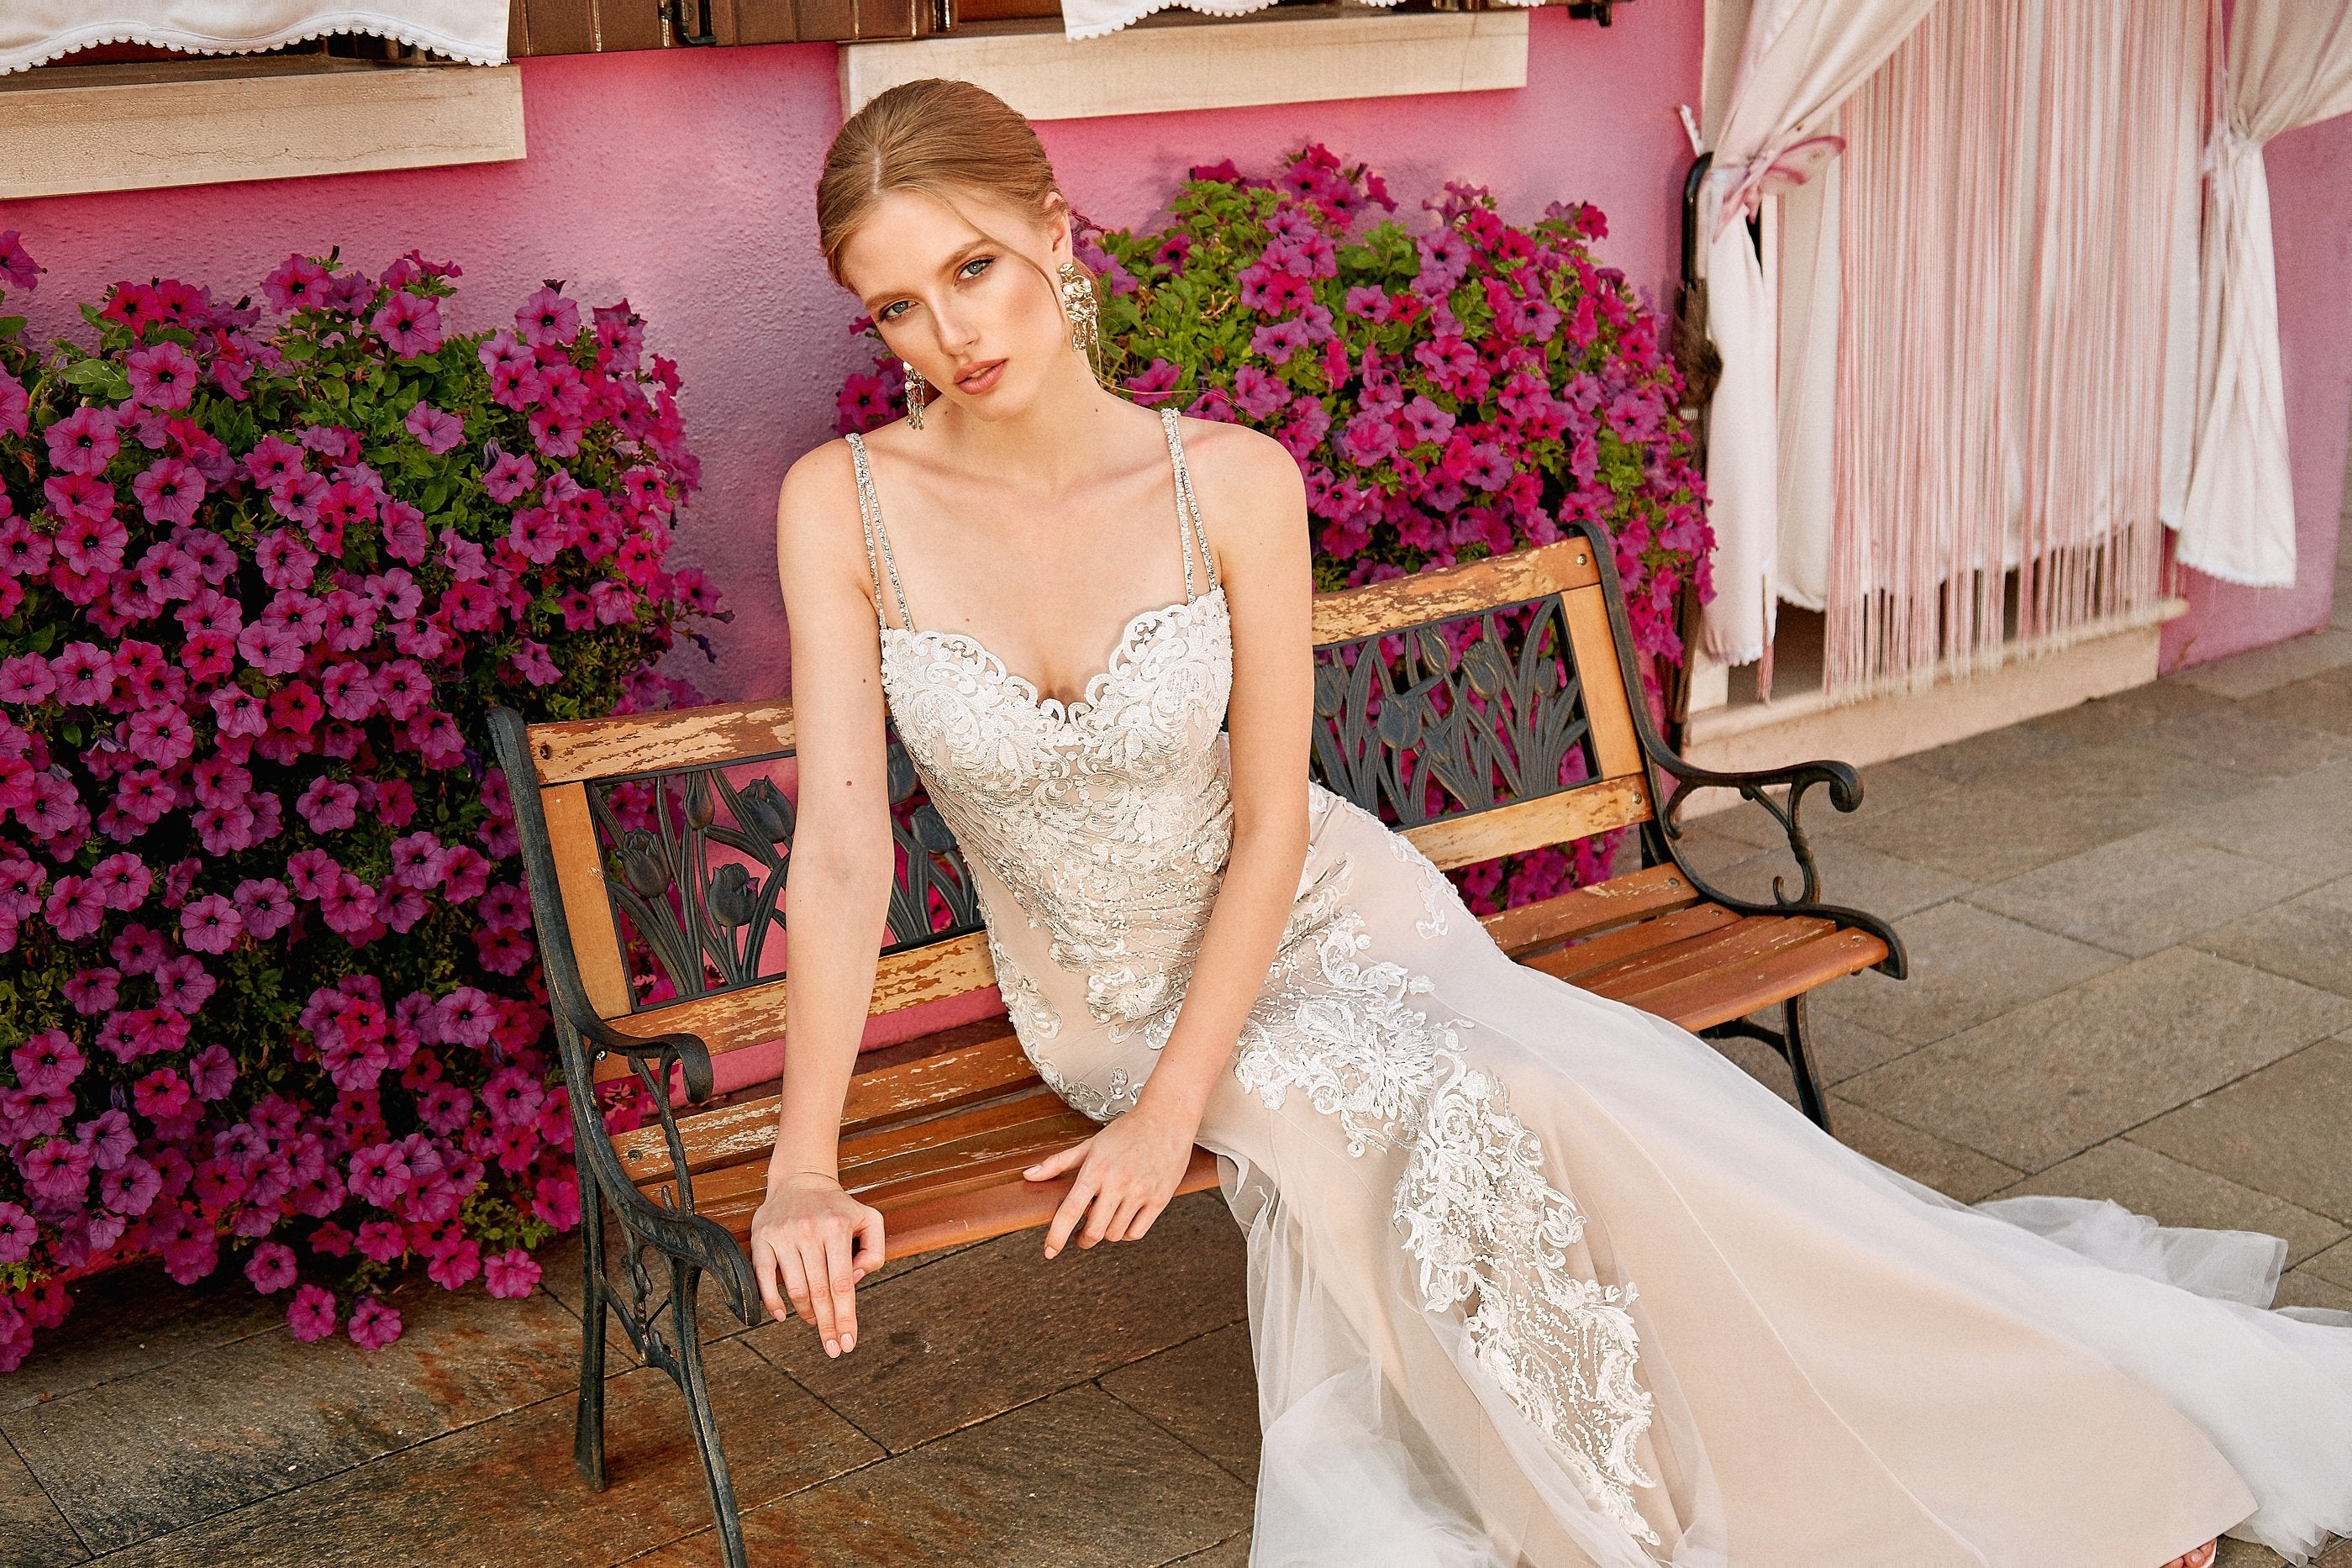 Suzanna, Summer Wedding Mermaid Modern Wedding Dress with Sweetheart Neckline and Frothy Tulle Train